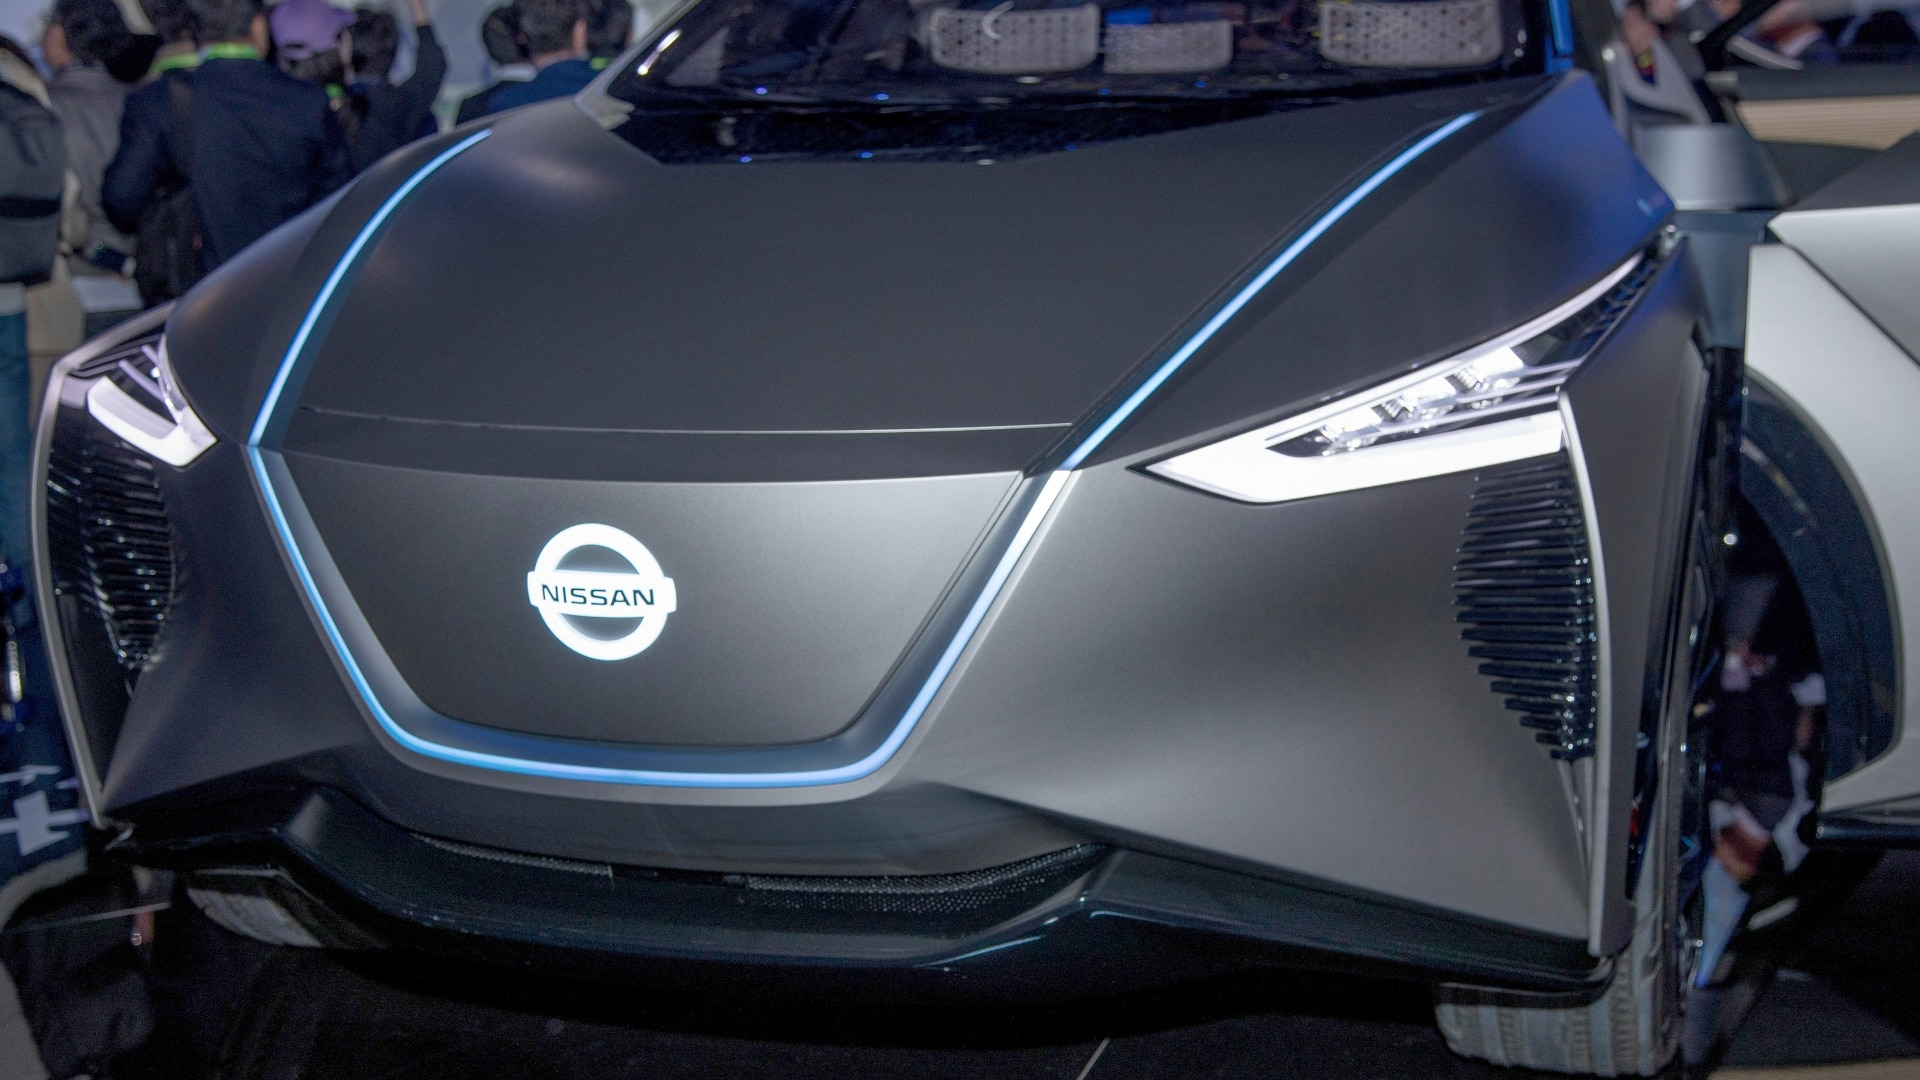 nissan-invisible-to-visible-vehicle-tech-ces-2019